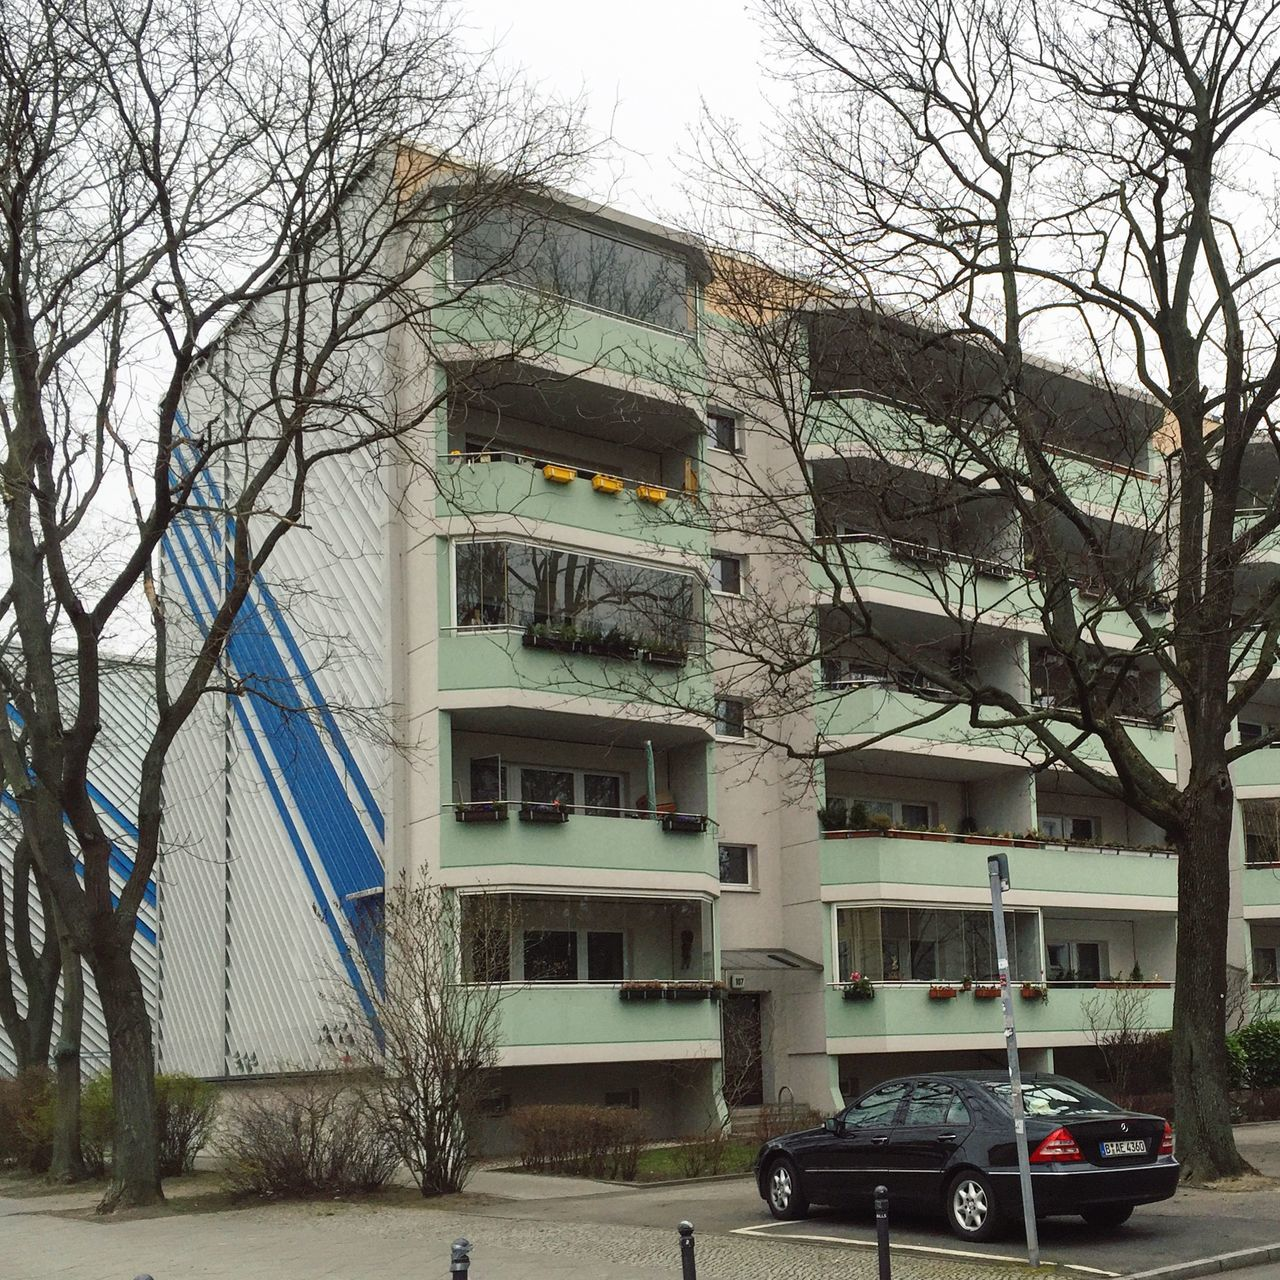 Abstract Architecture Architecture_collection Balcony Bare Tree Berlin Photography Berliner Ansichten Berlinstagram Branch Building Exterior Built Structure Car City Façade Land Vehicle Minimal Mode Of Transport No People Outdoors Plattenbau Sky Stationary Transportation Tree Treptow